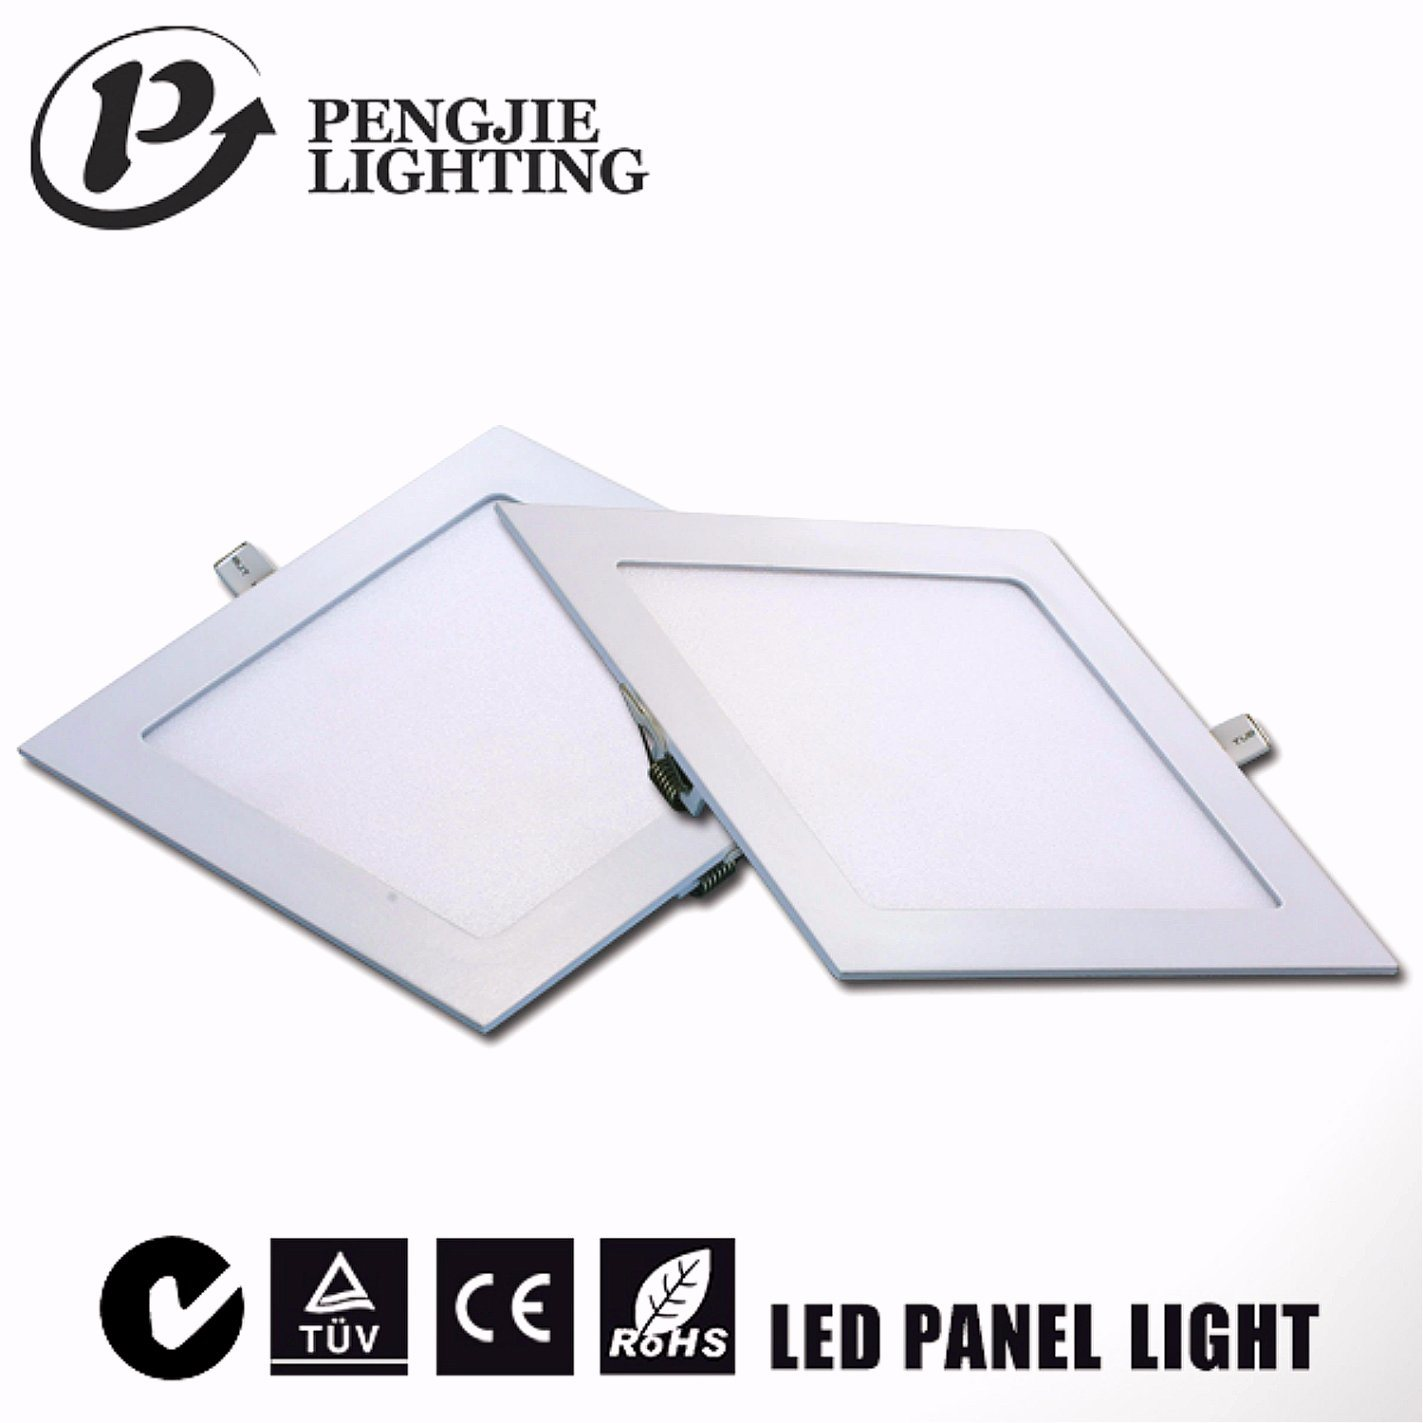 12W White LED Ceiling Panel Light for Home (PJ4029)